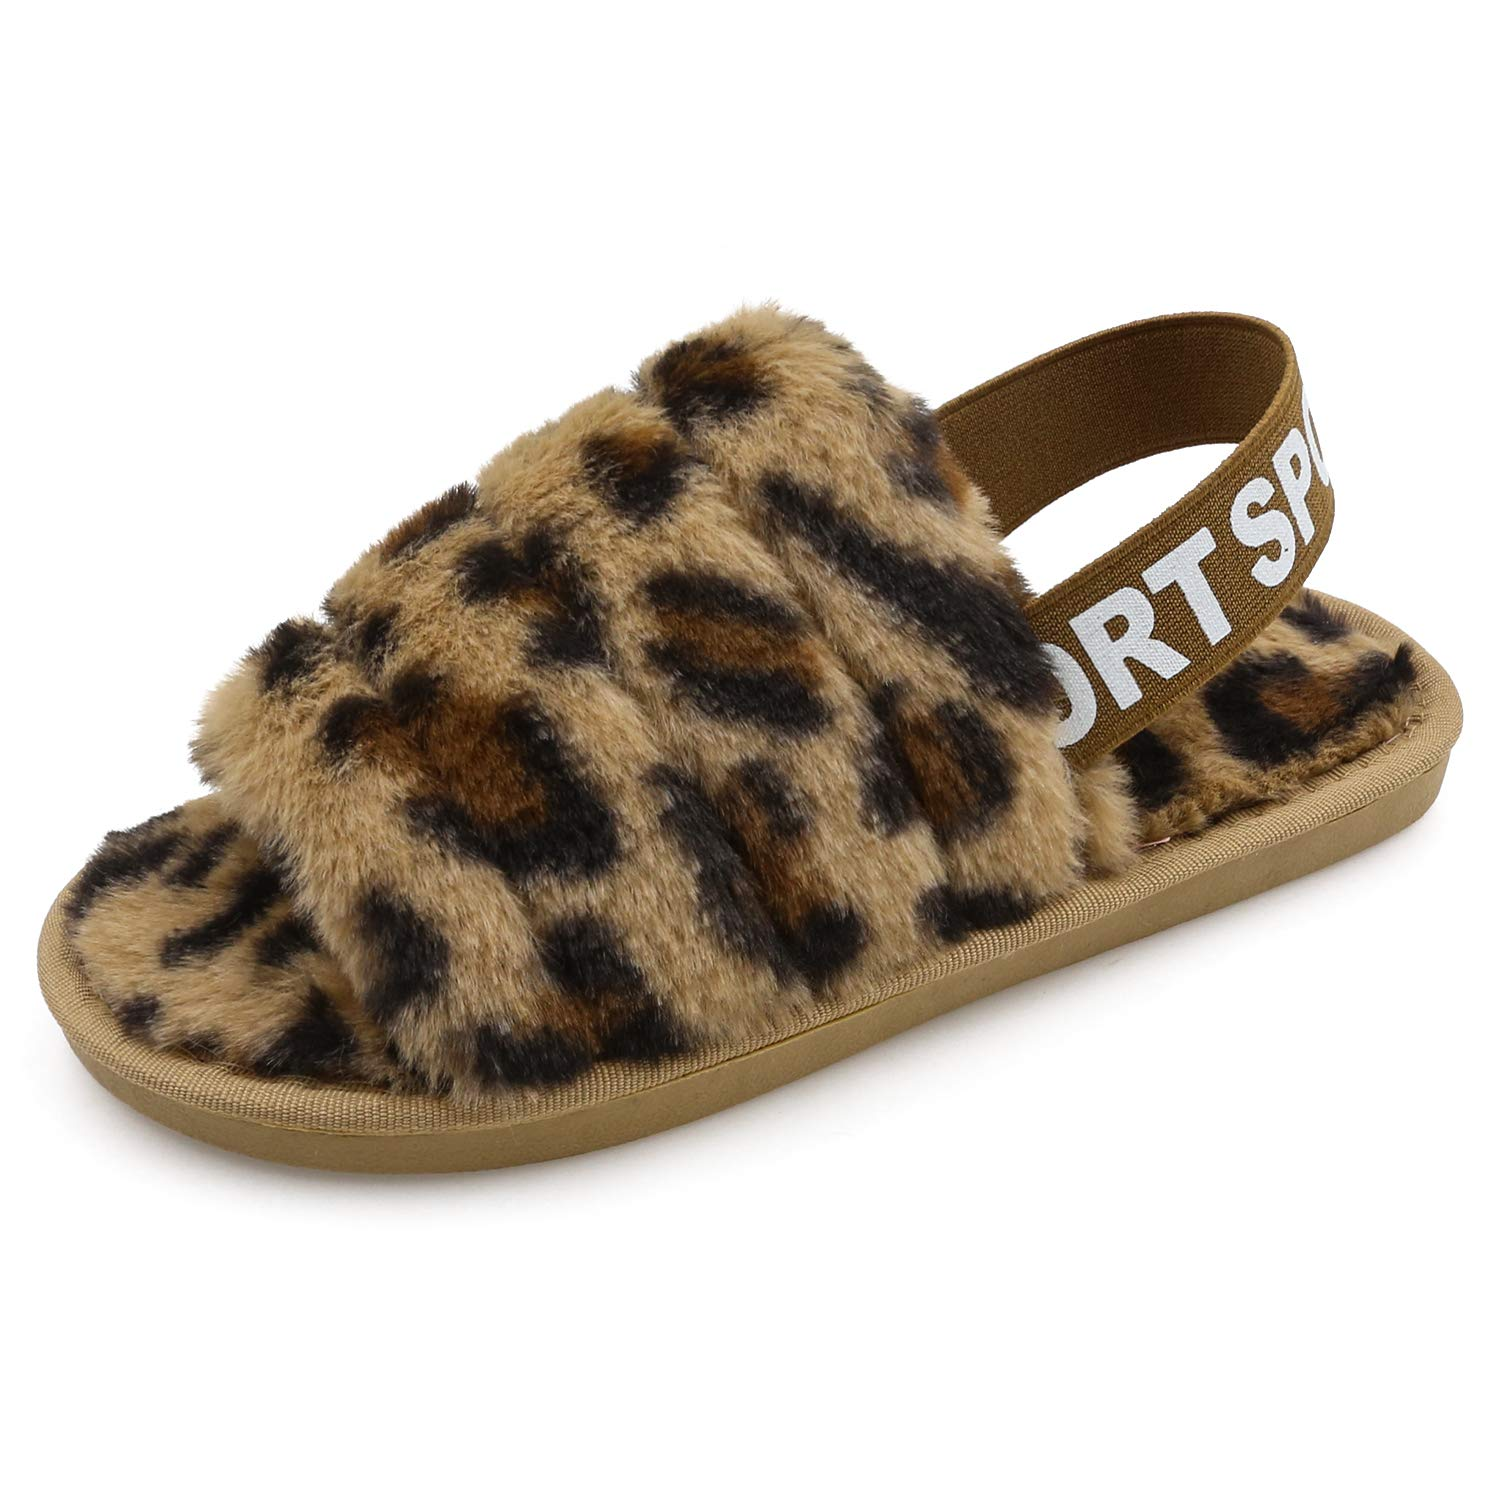 Womens Fluffy Fuzzy Slides Slipper Sandals Leopard Print Soft Warm Comfy Cozy Bedroom House Indoor Outdoor Slippers Sandals with Elastic Strap